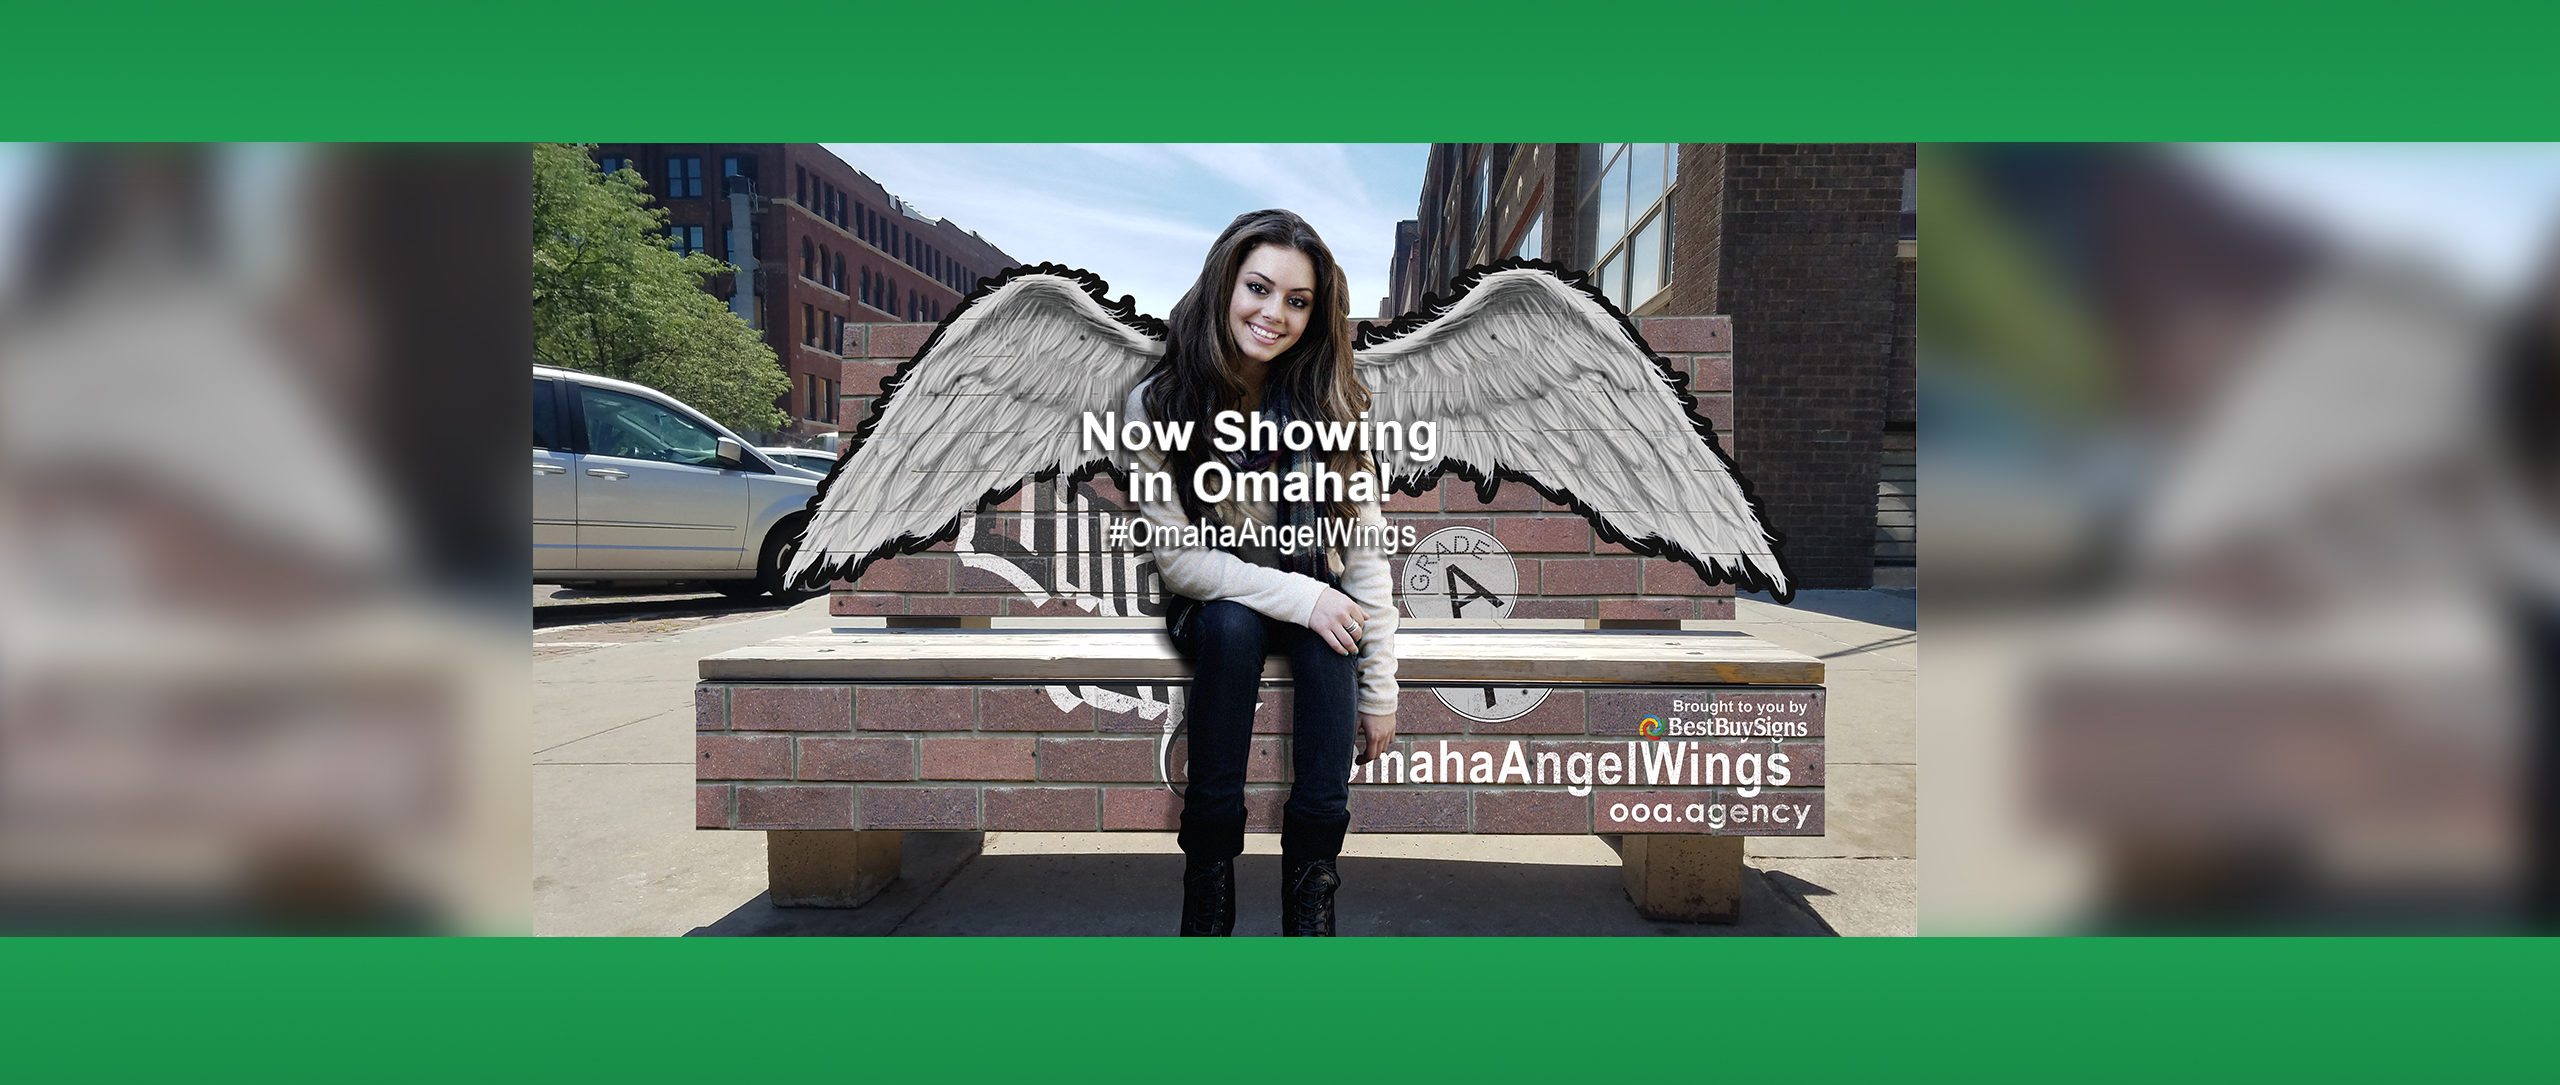 Header Image - Now Showing in Omaha